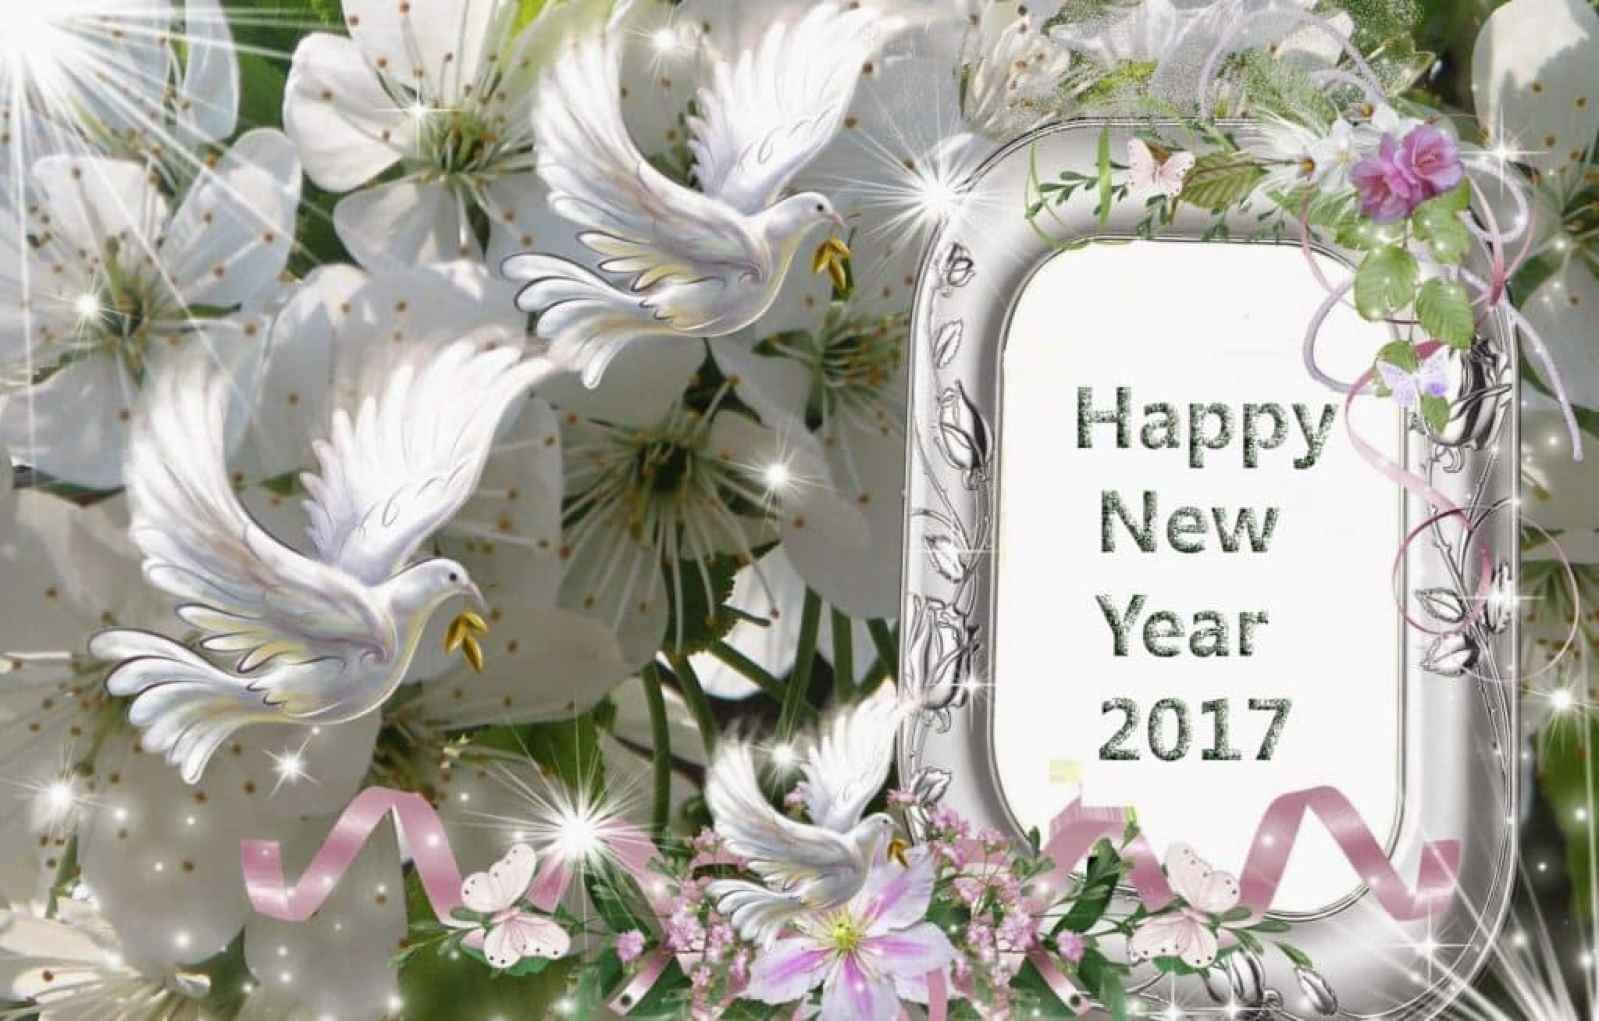 Happy New Year 2017 with birds and mirror